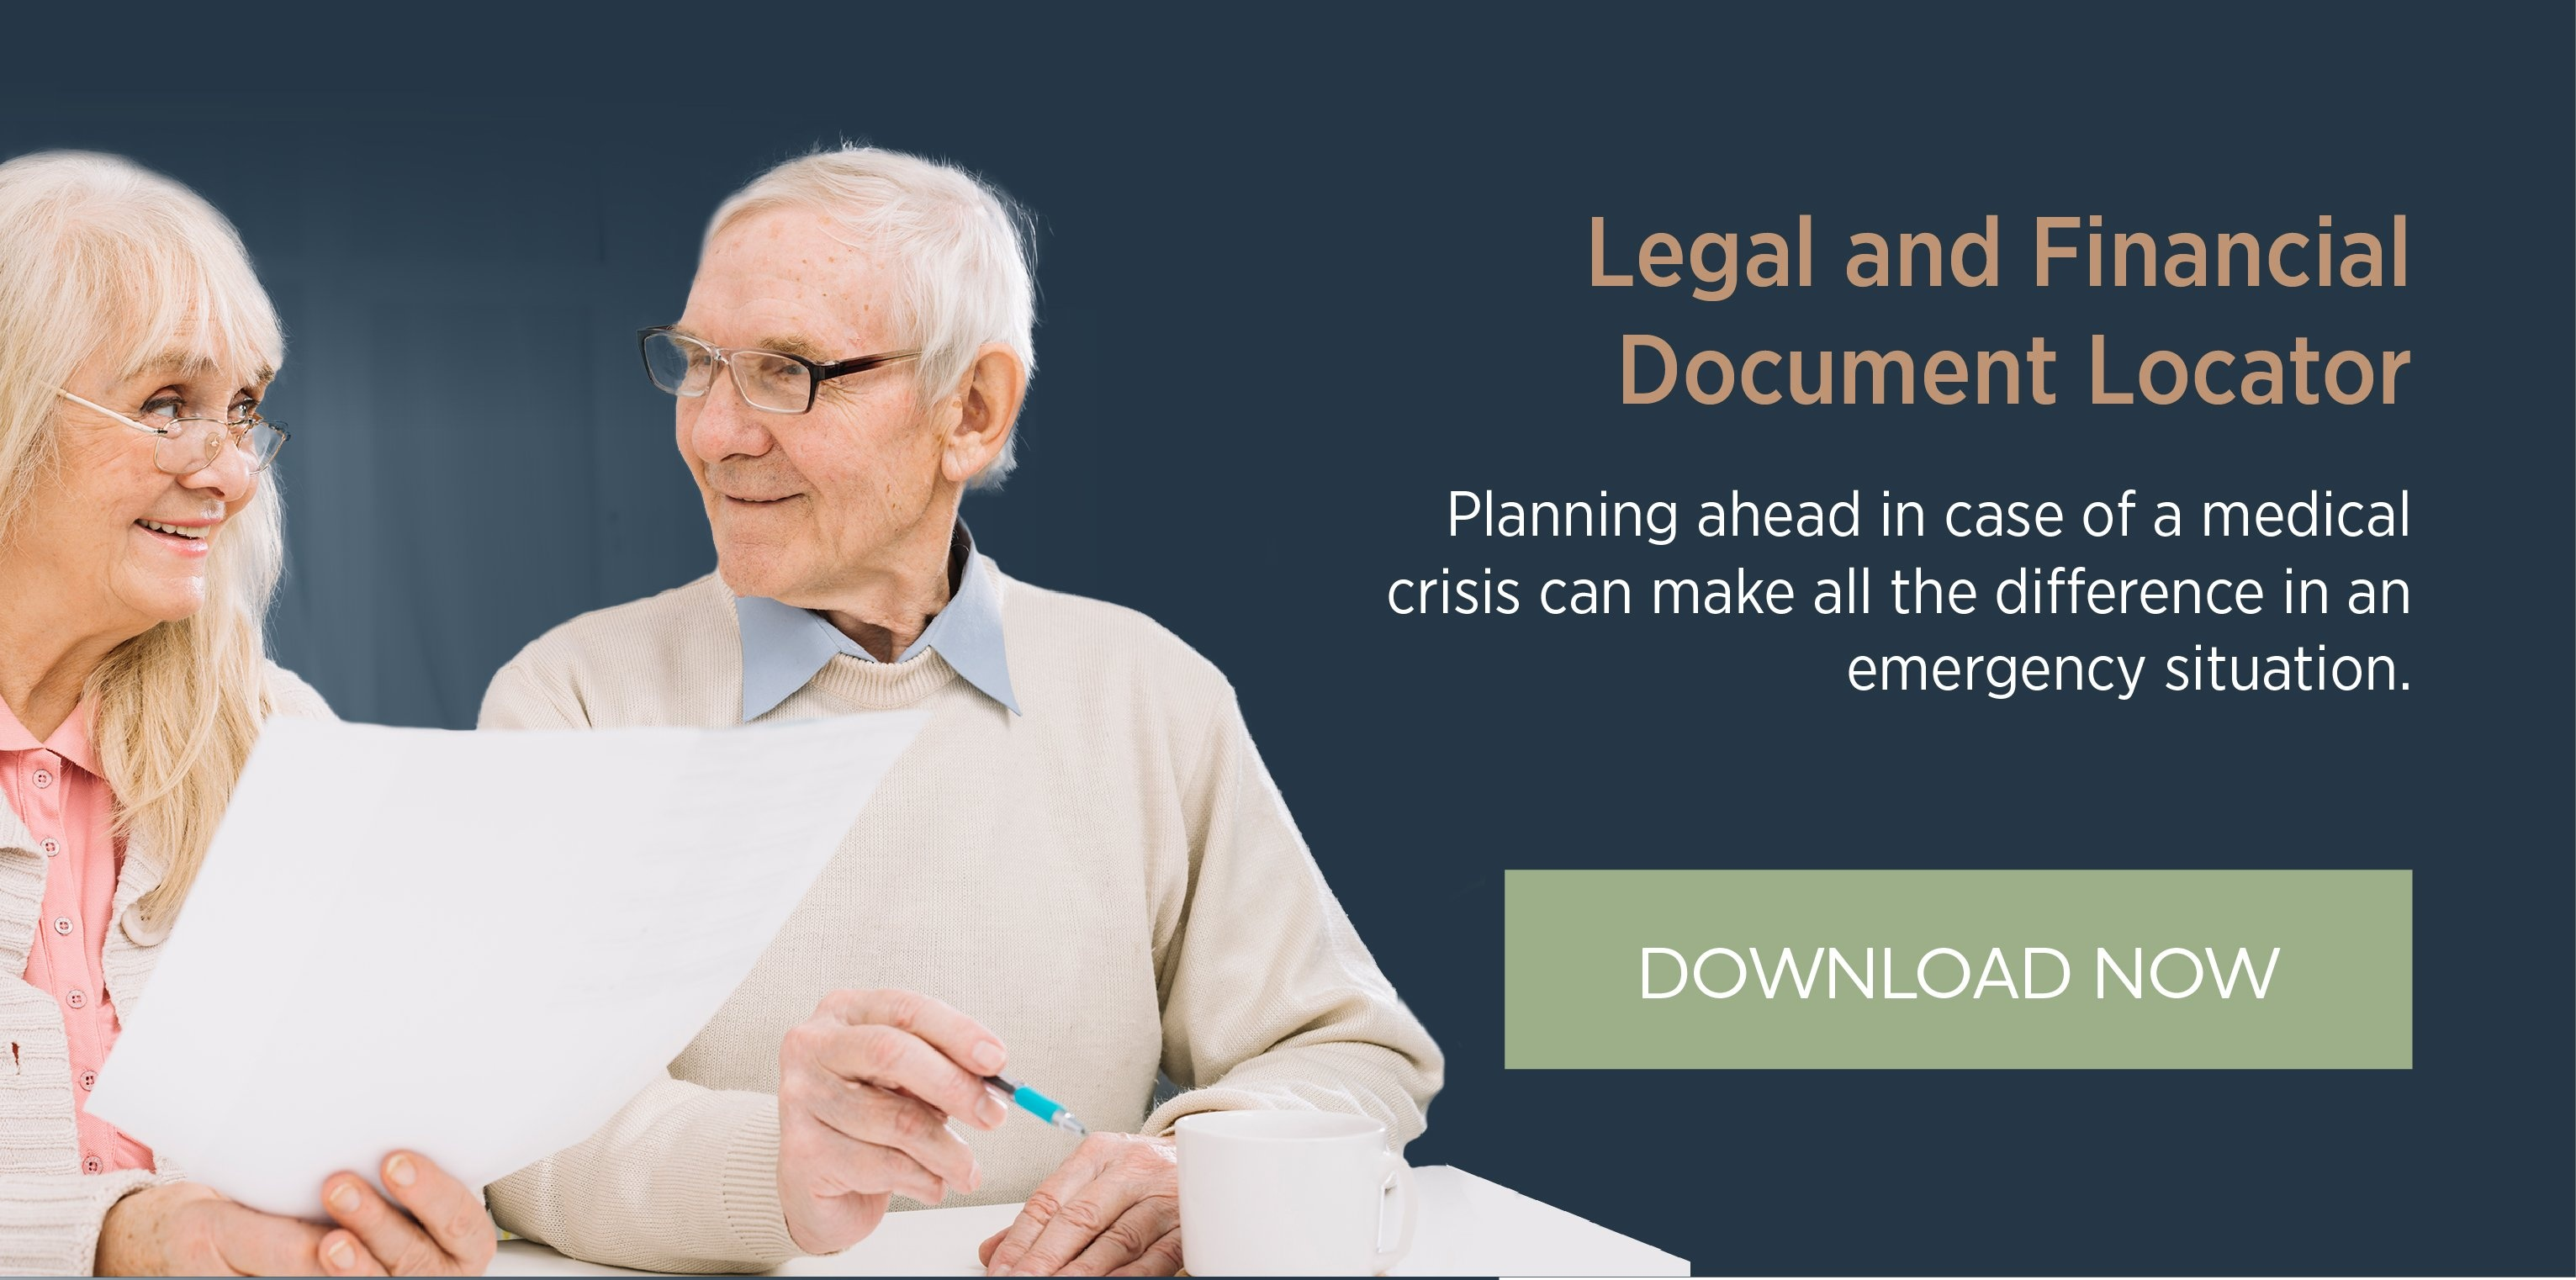 Legal & Financial Document Locator Checklist